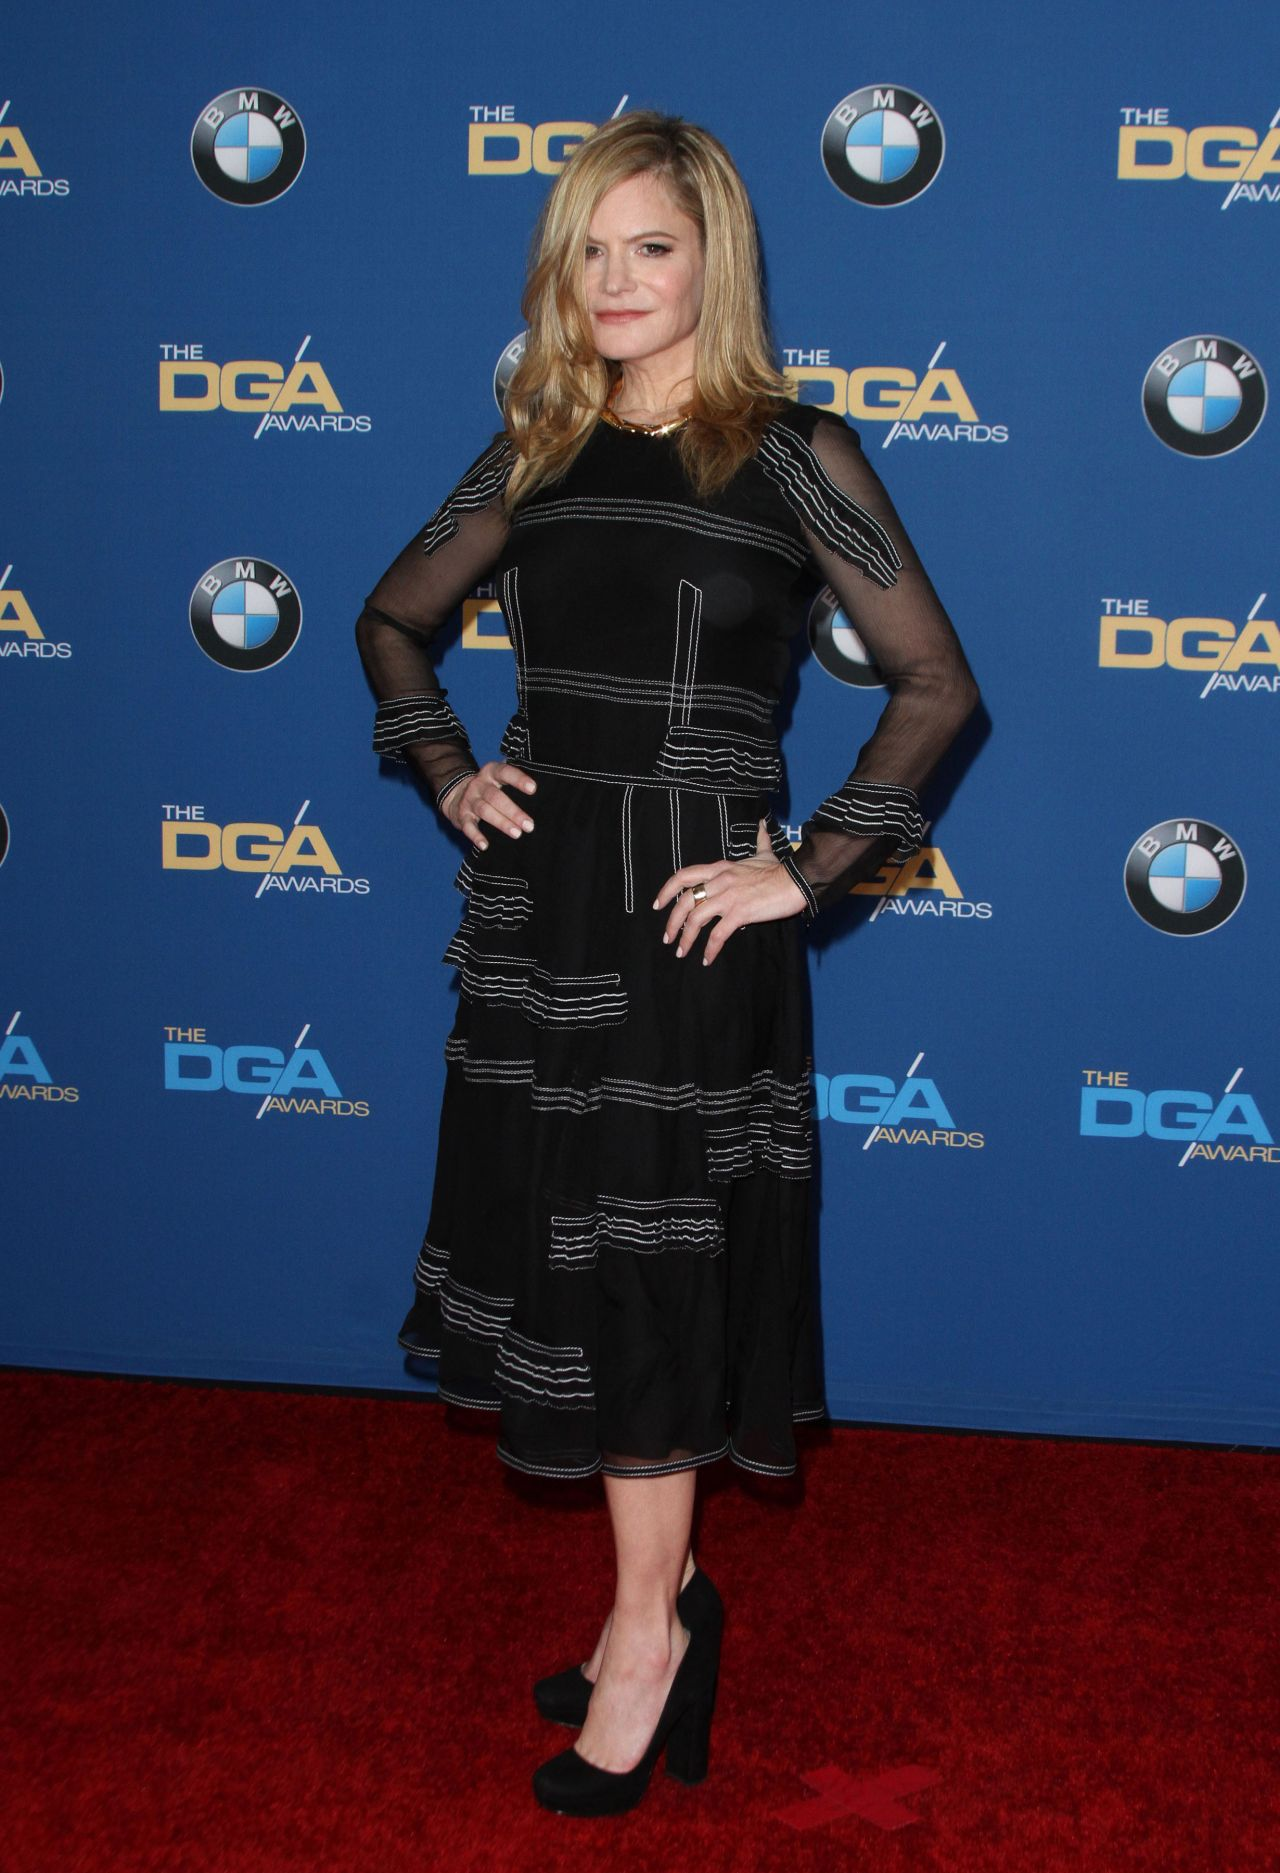 jennifer-jason-leigh-directors-guild-of-america-awards-2016-in-los-angeles-5